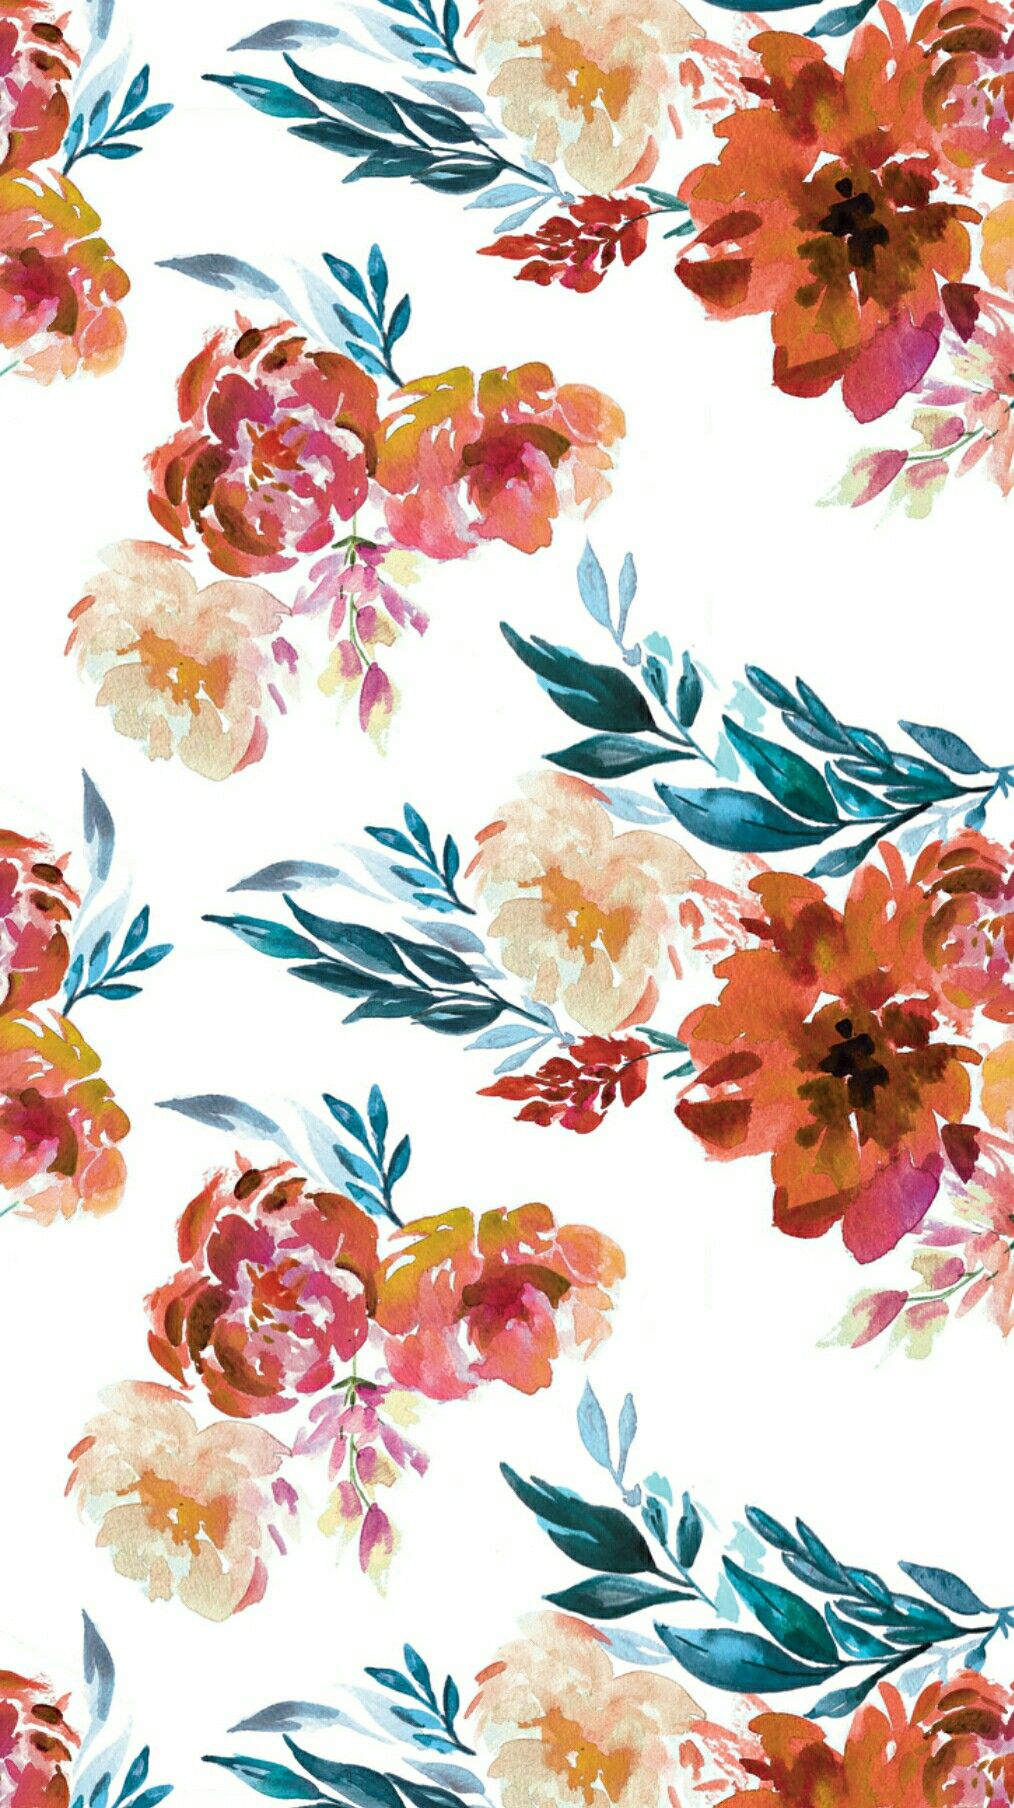 Wallpaper Iphone Floral Wallpaper Iphone Floral Wallpaper